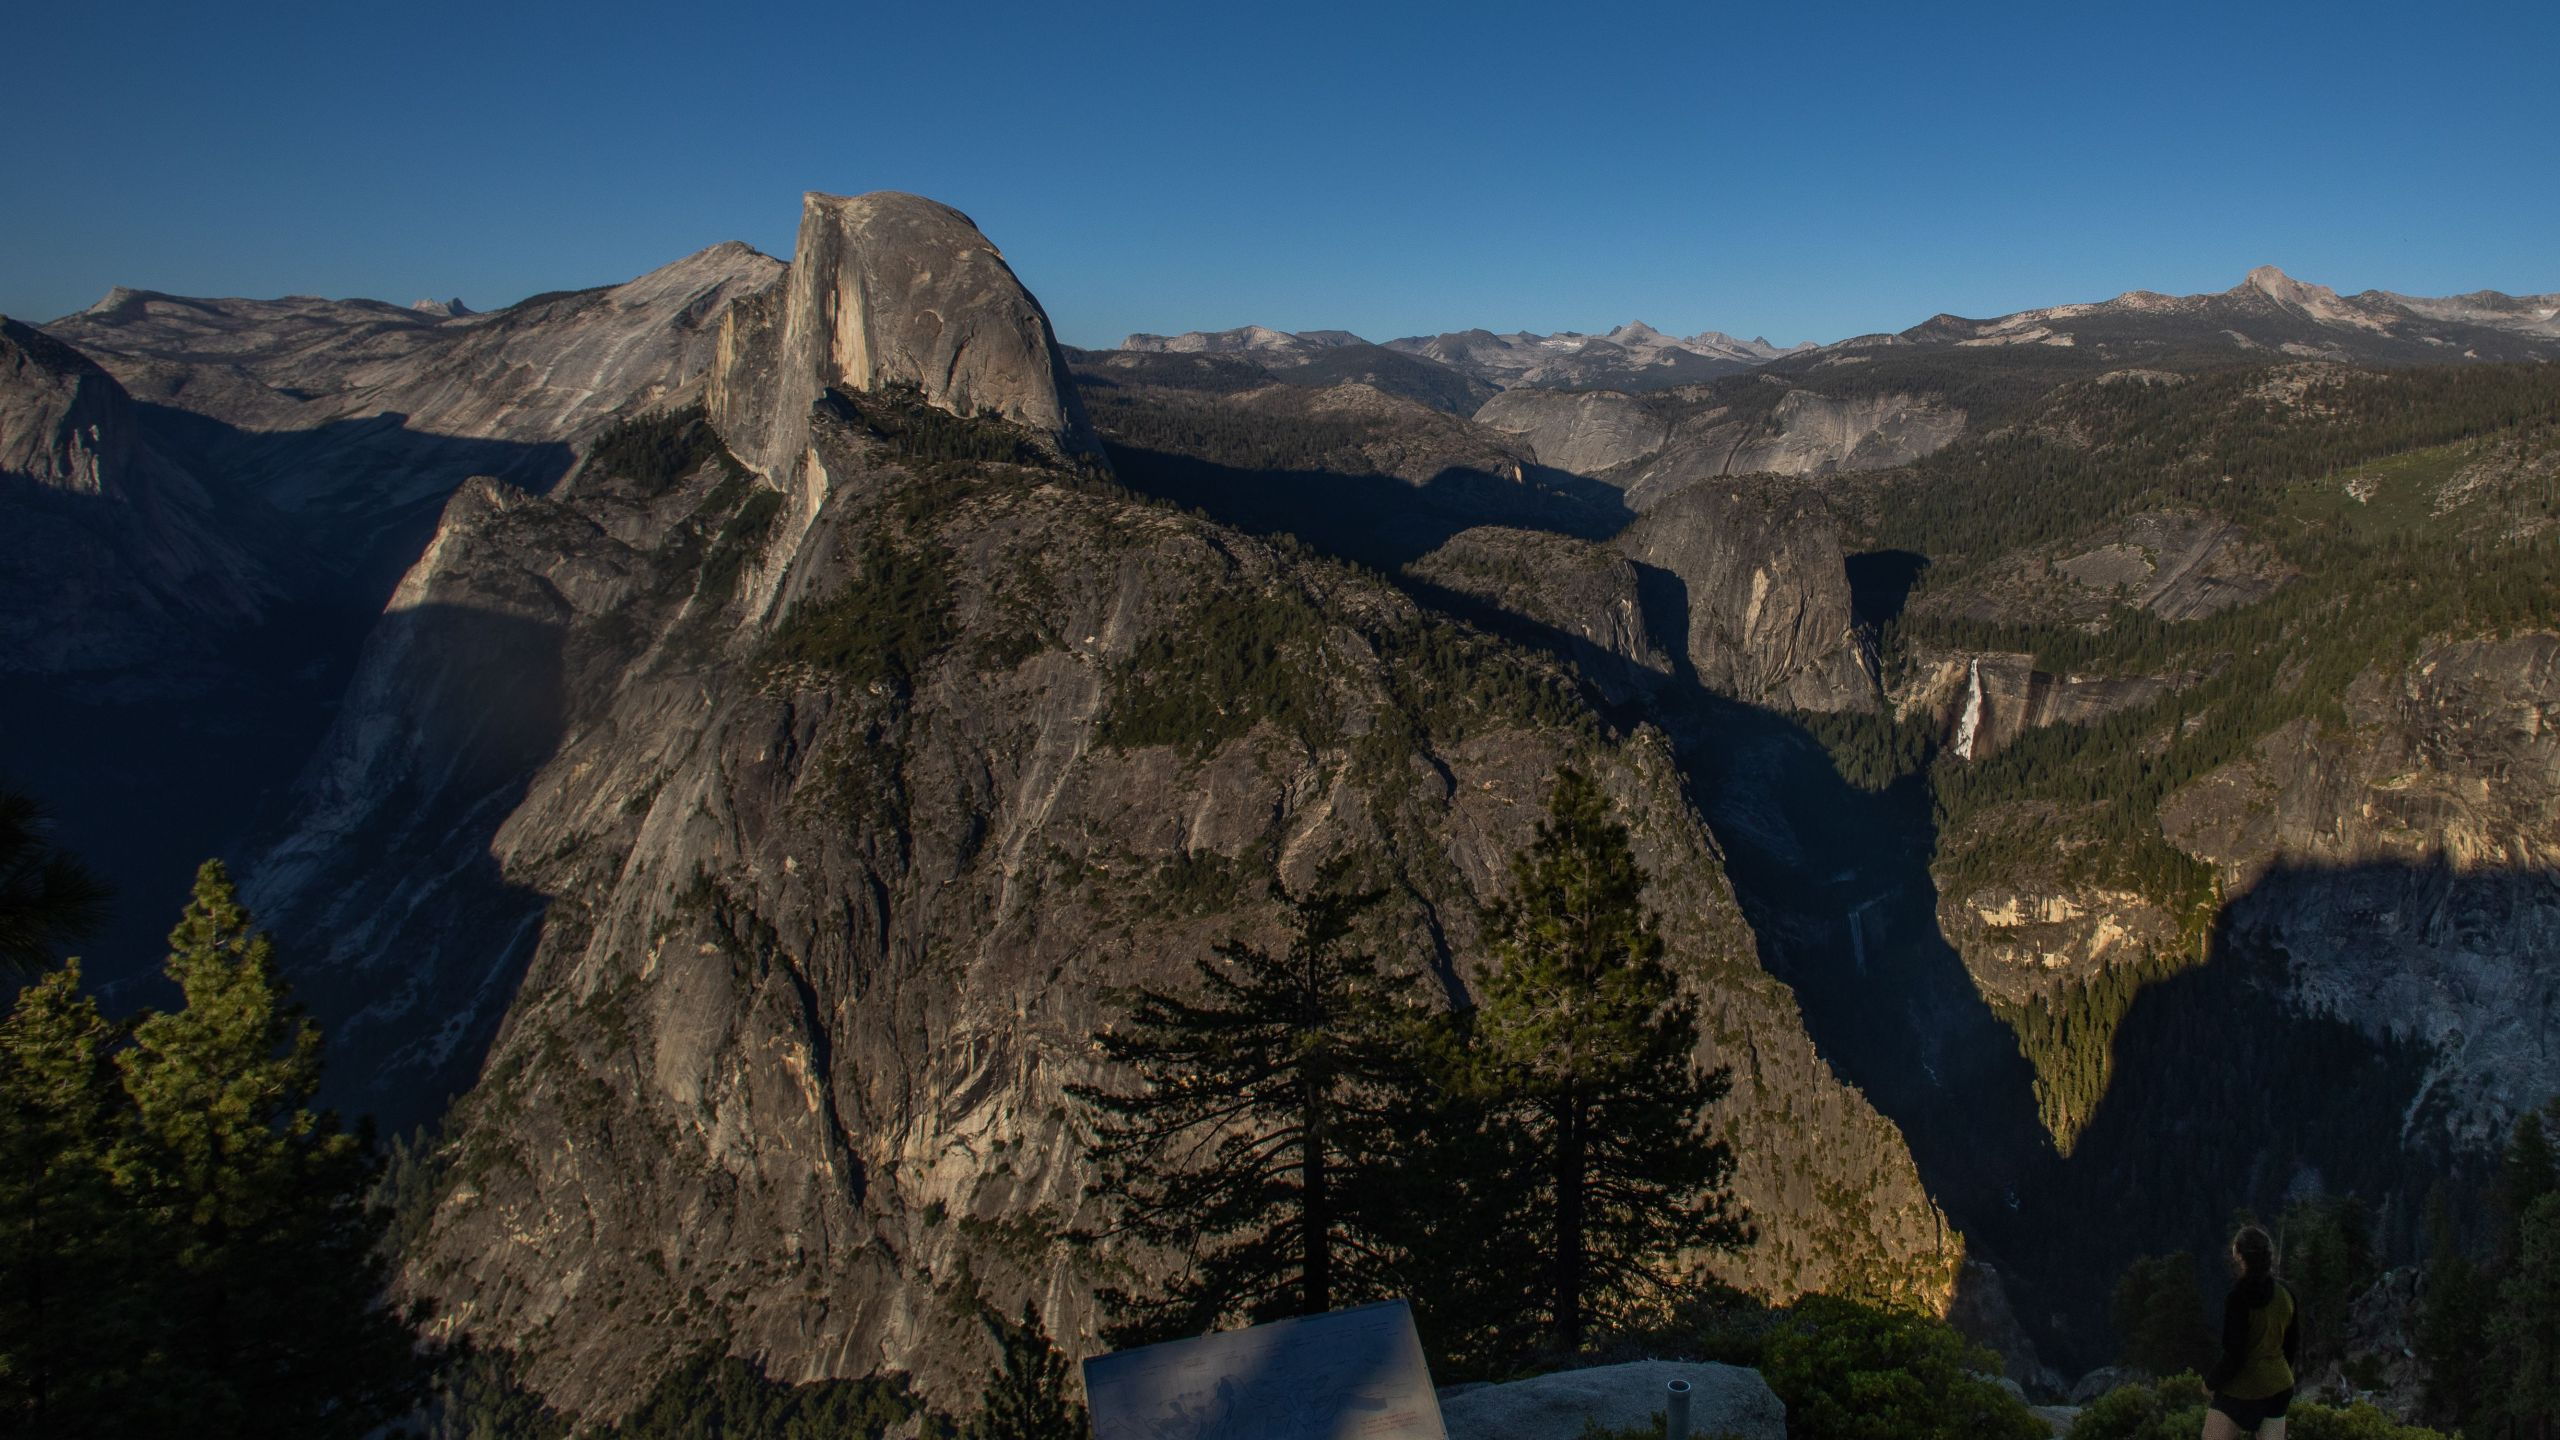 A visitor looks at Yosemite Valley including Half Dome (C L) and Nevada Fall (C R) from the Glacier Point in Yosemite National Park, California on July 06, 2020. (Apu Gomes/AFP via Getty Images)